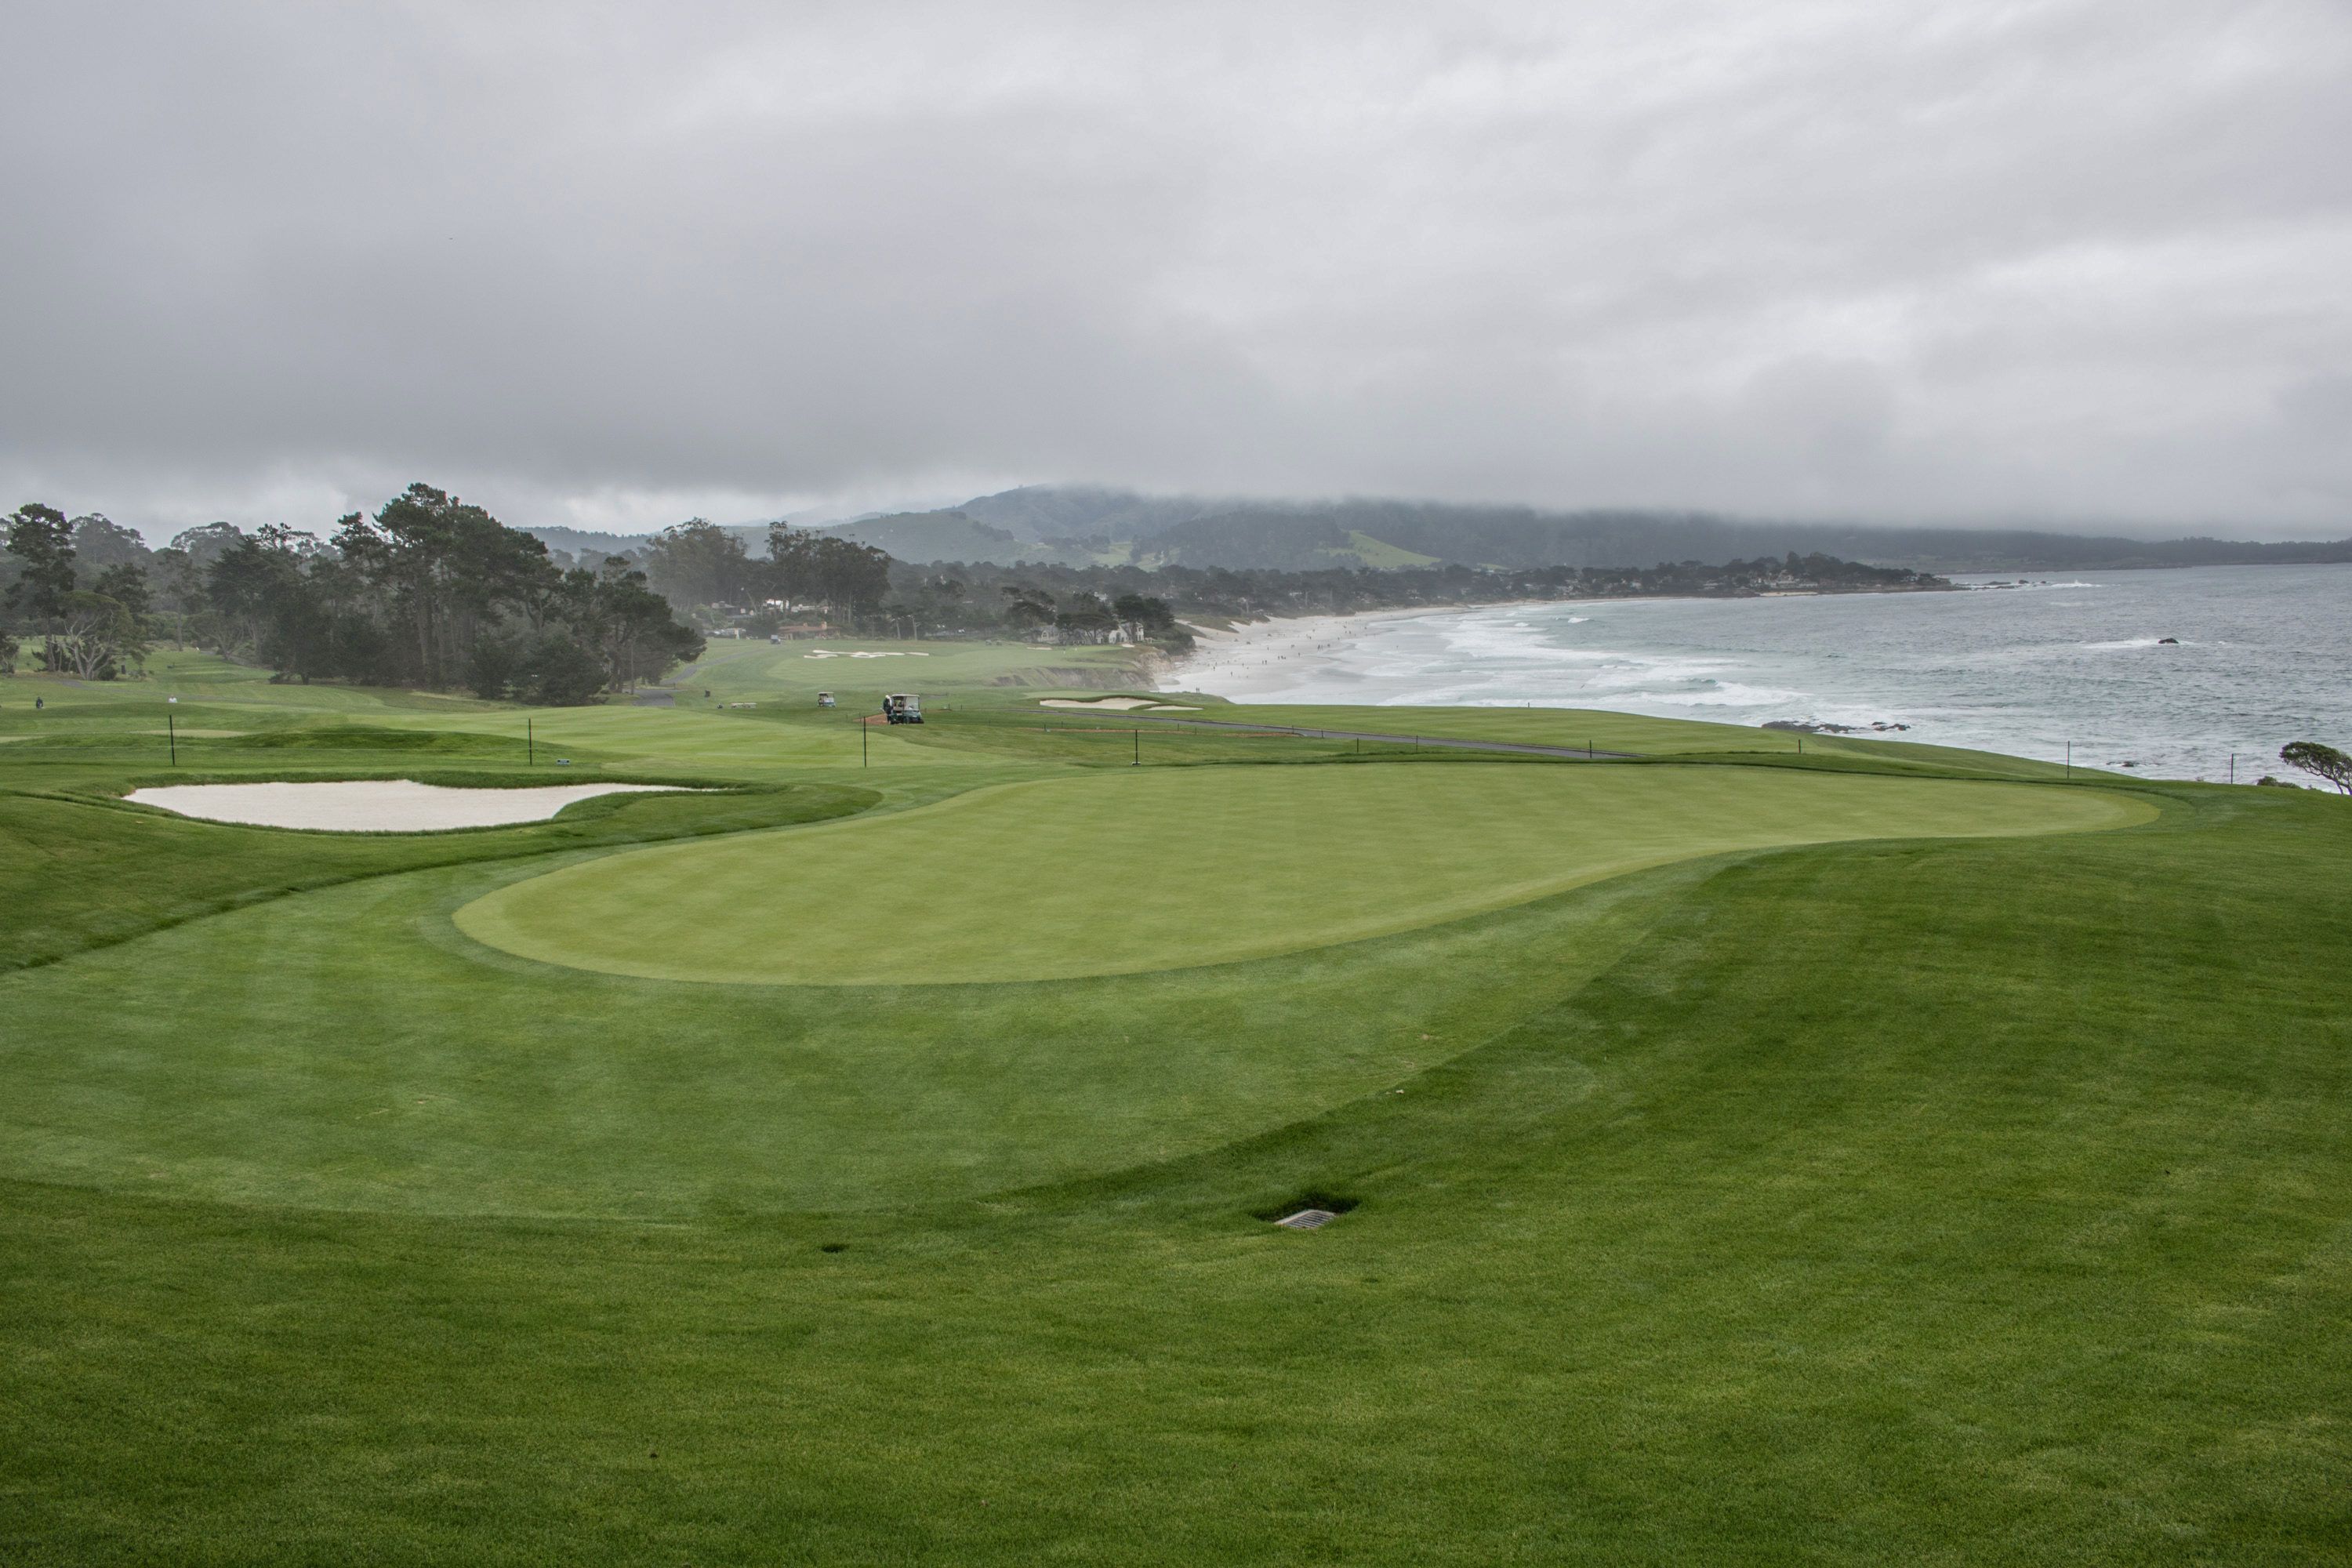 New 13th green Pebble Beach